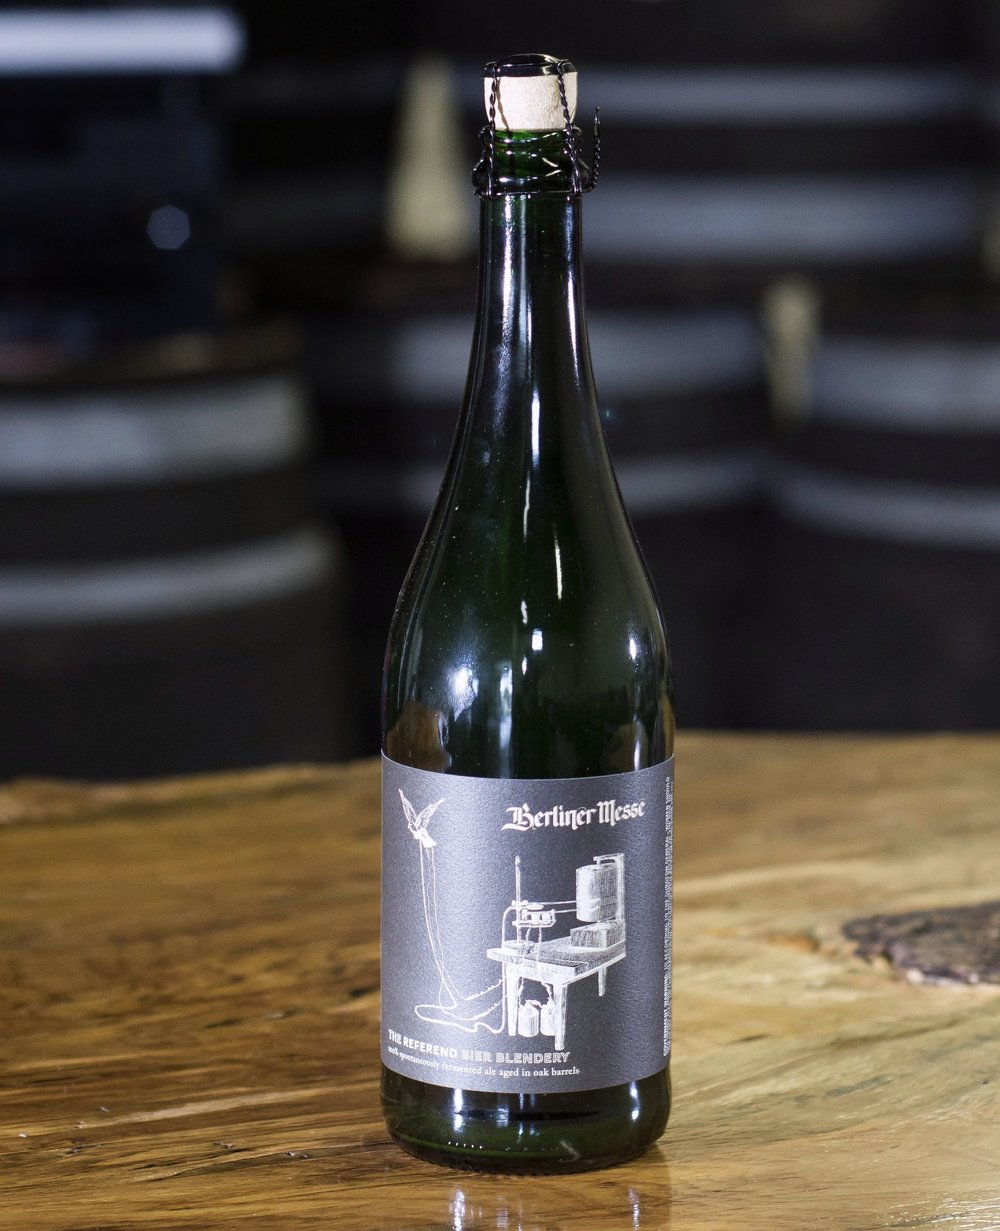 Berliner Messe - Served both blended and unblended, on cask and in bottles, this fully spontaneously fermented pale wheat ale matures for many months in neutral oak barrels.